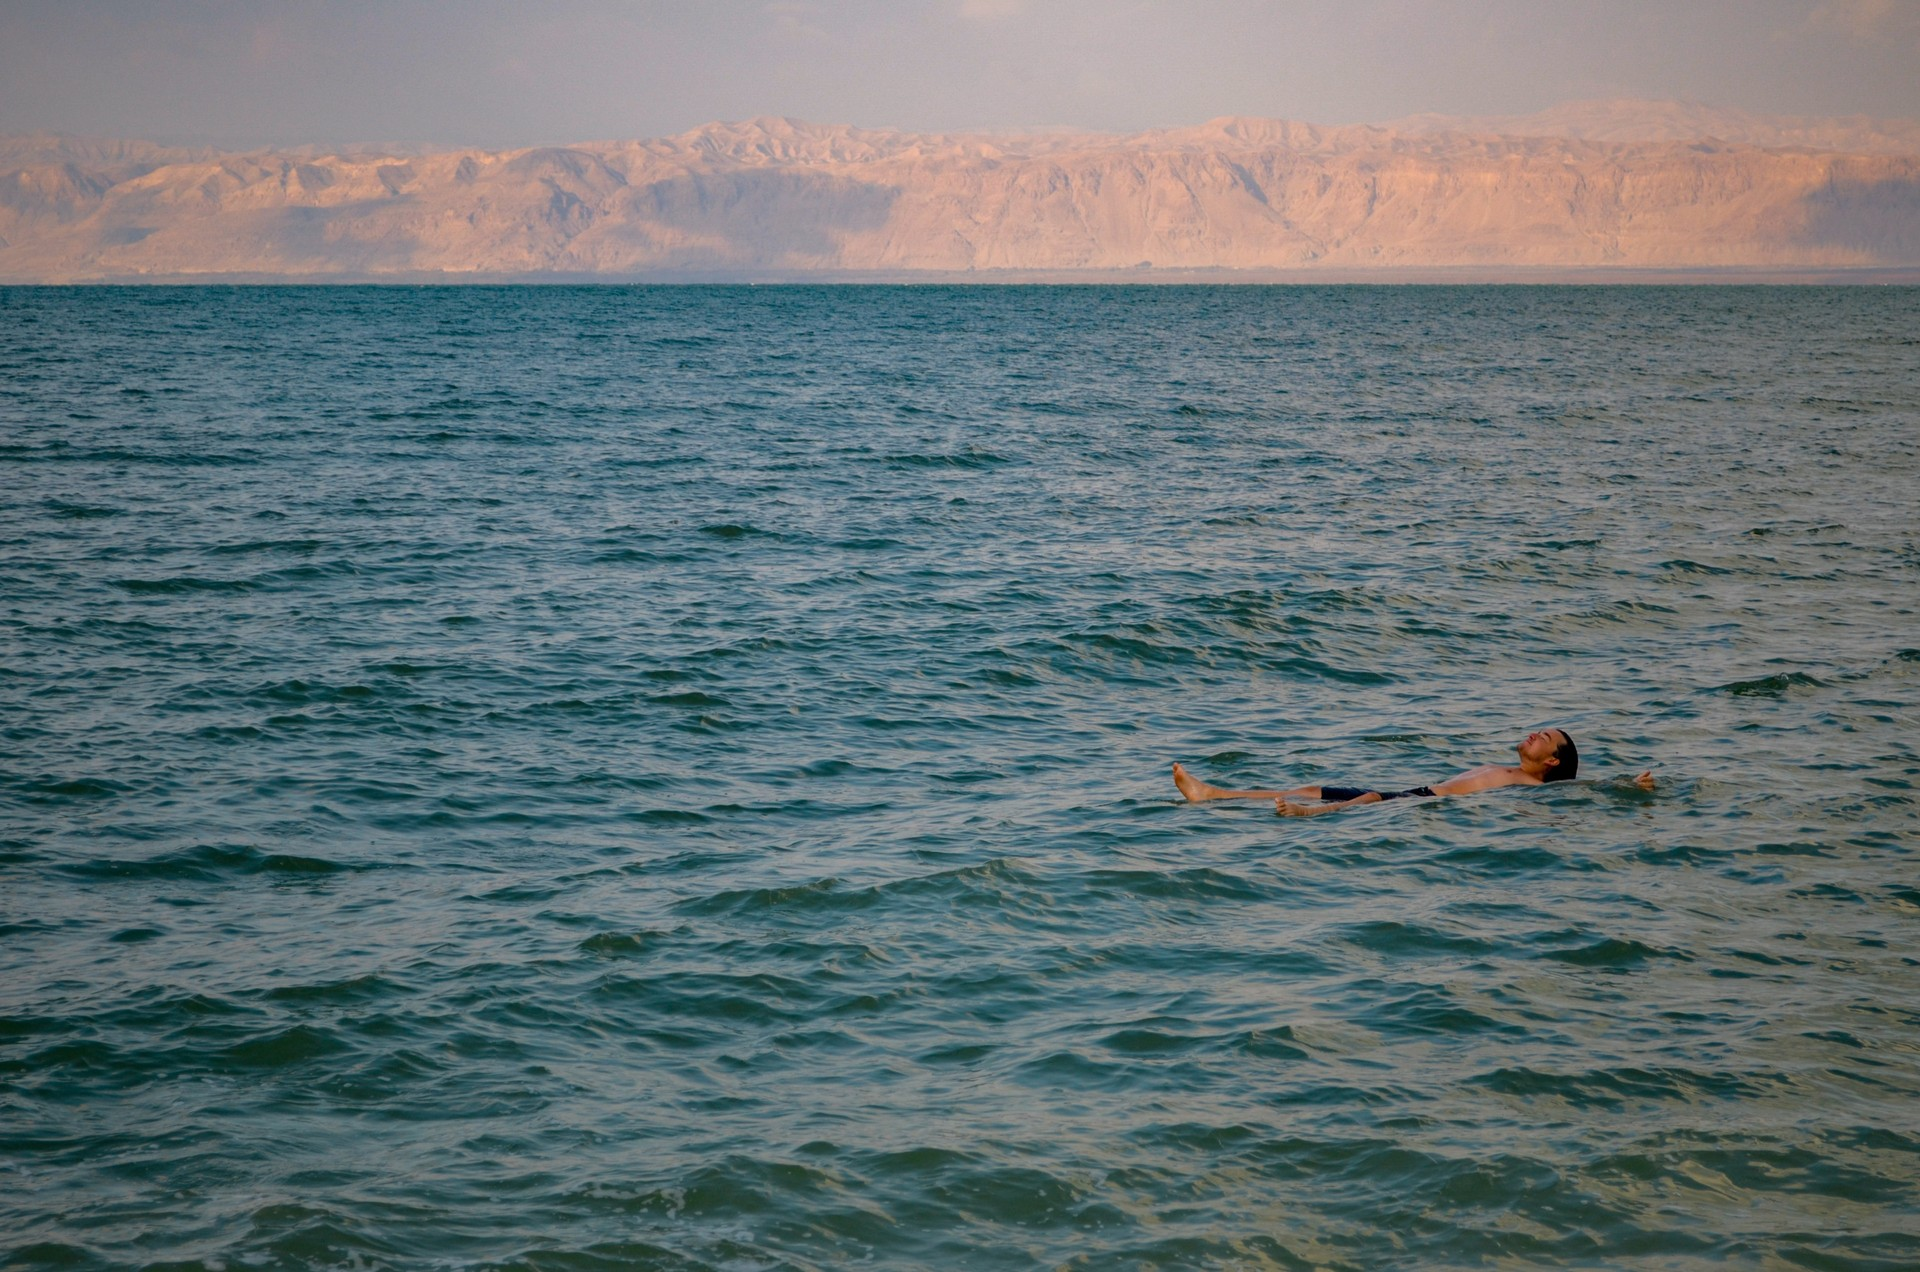 The best places to go wild swimming: The Dead Sea in Jordan